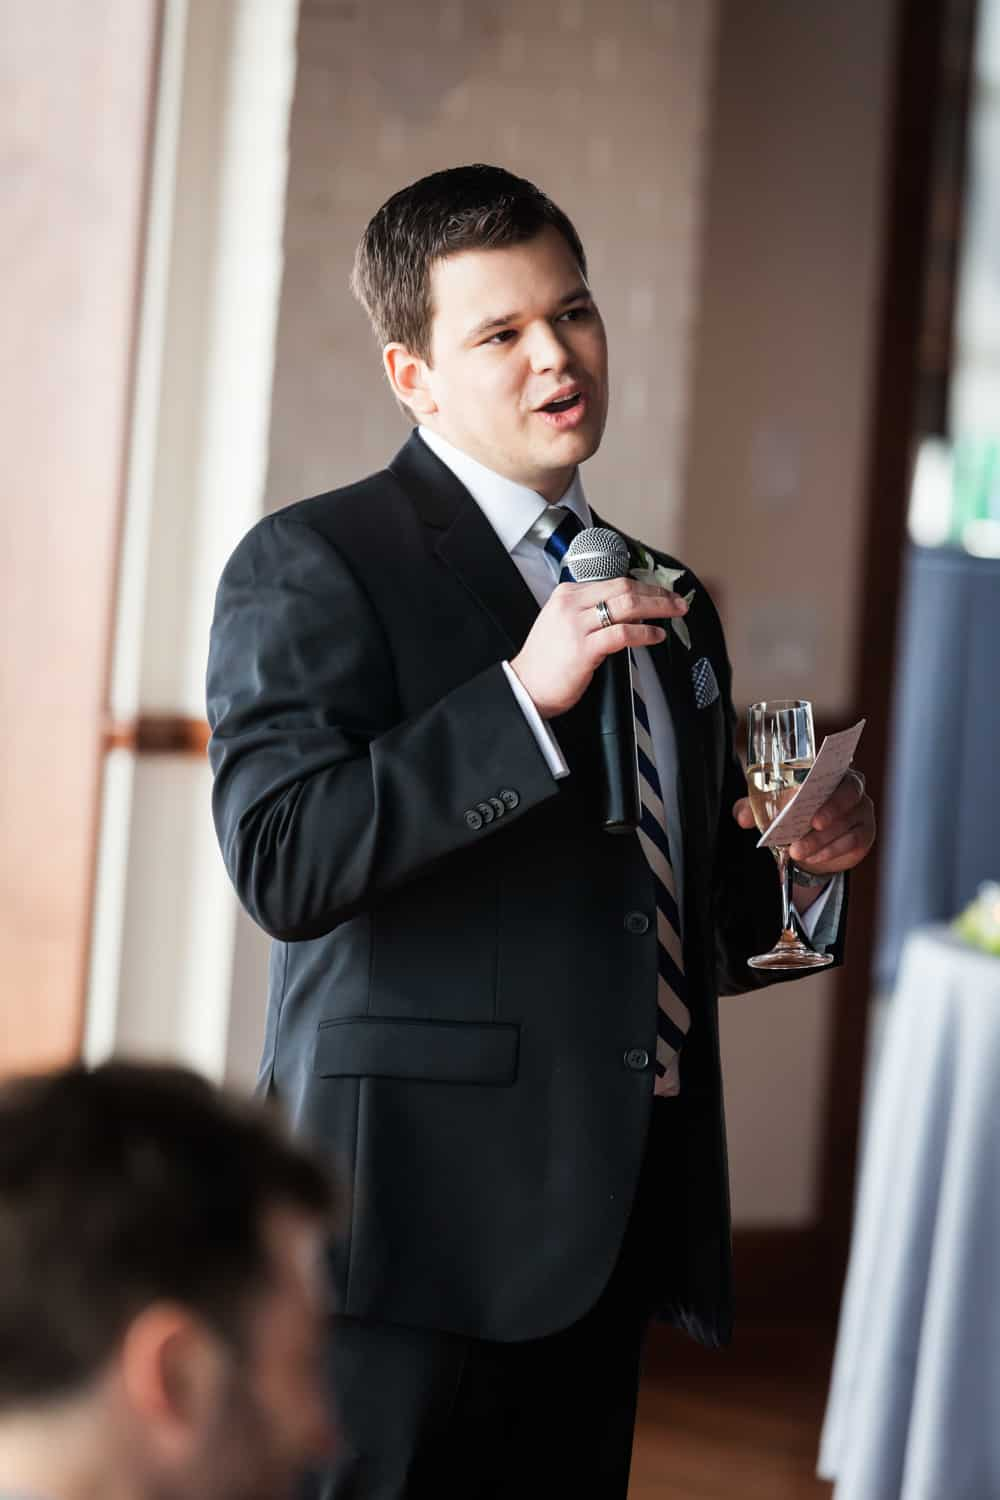 Best man holding champagne glass and making speech into microphone